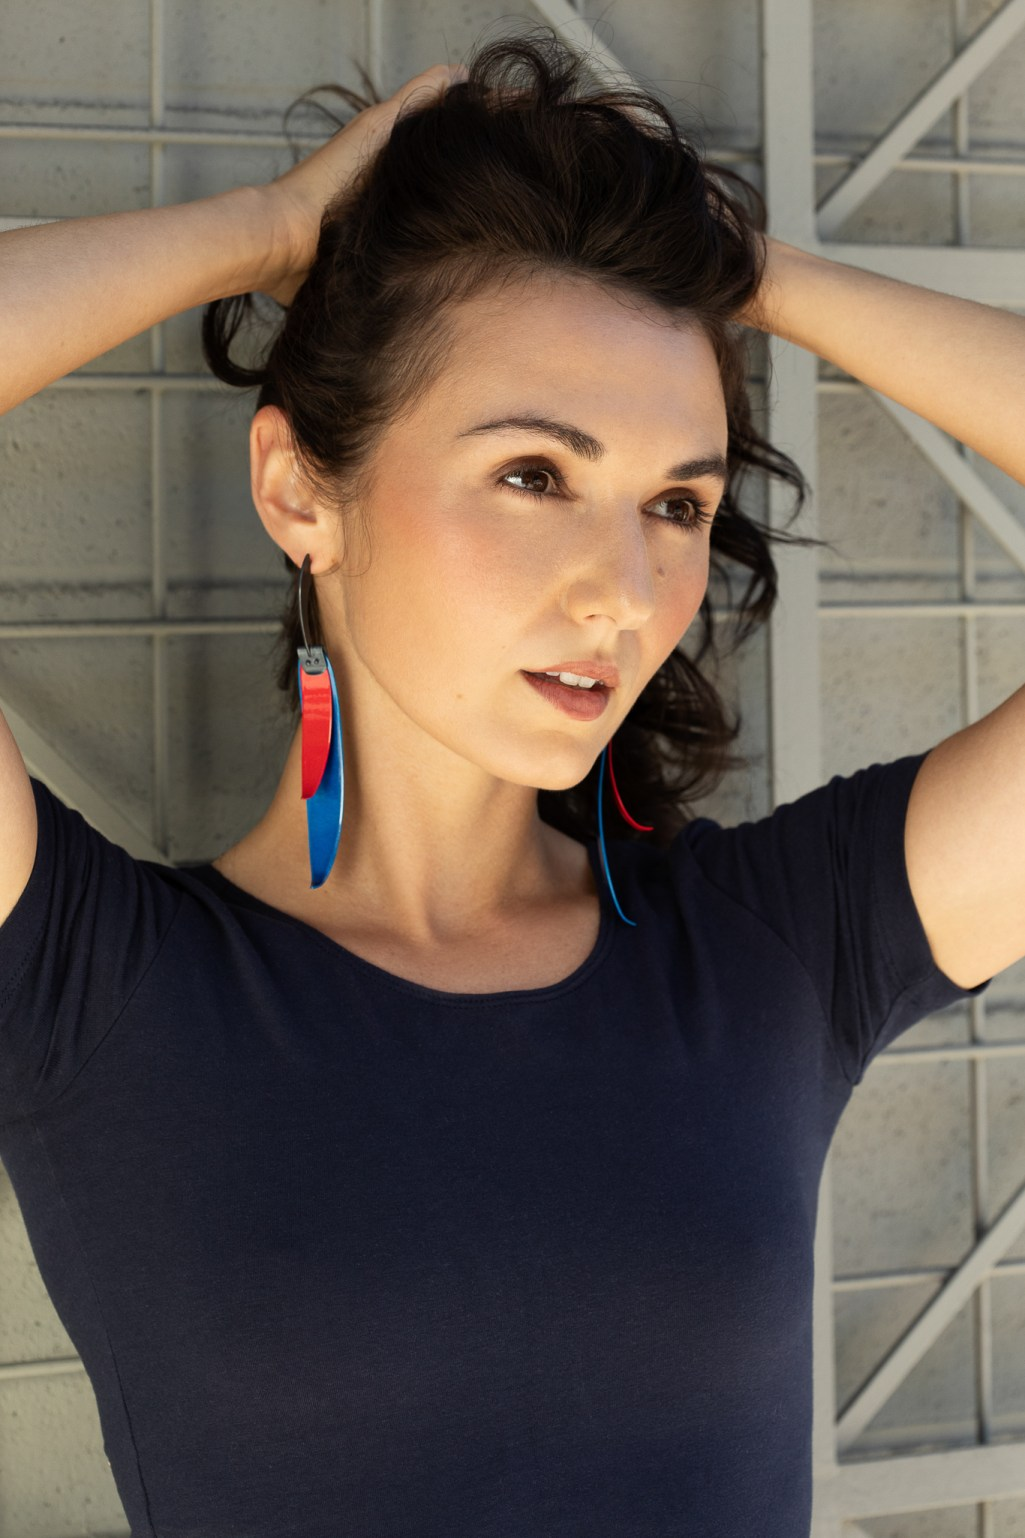 Lifestyle jewelry branding photography. Metal earrings worn by model Zoe West with makeup by Kalyn Slaughter